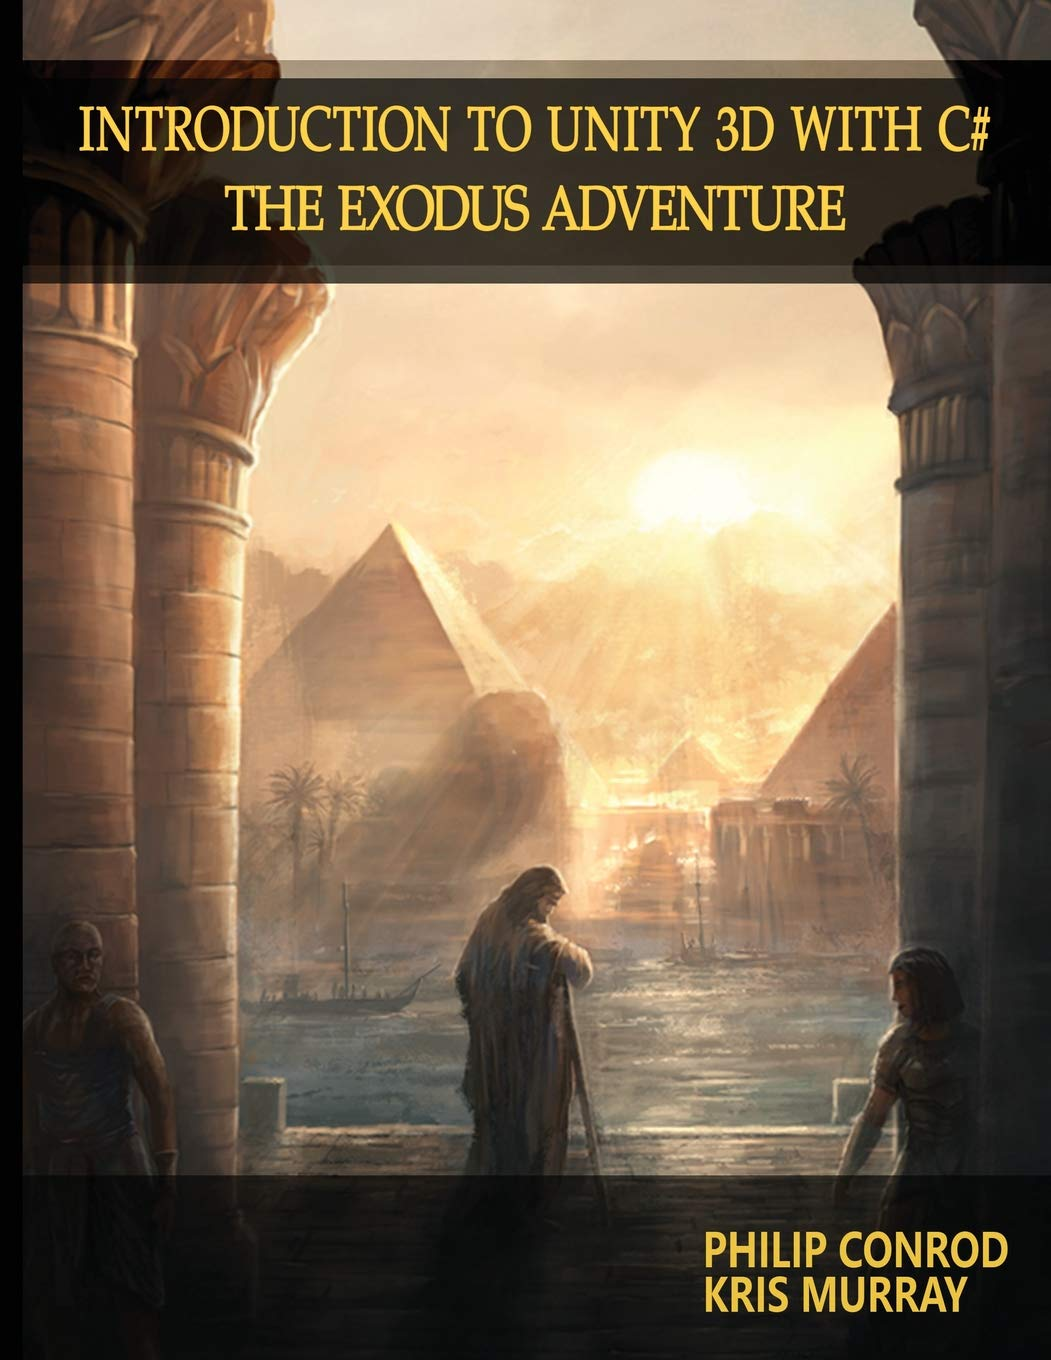 Introduction to Unity 3D with C#: The Exodus Adventure